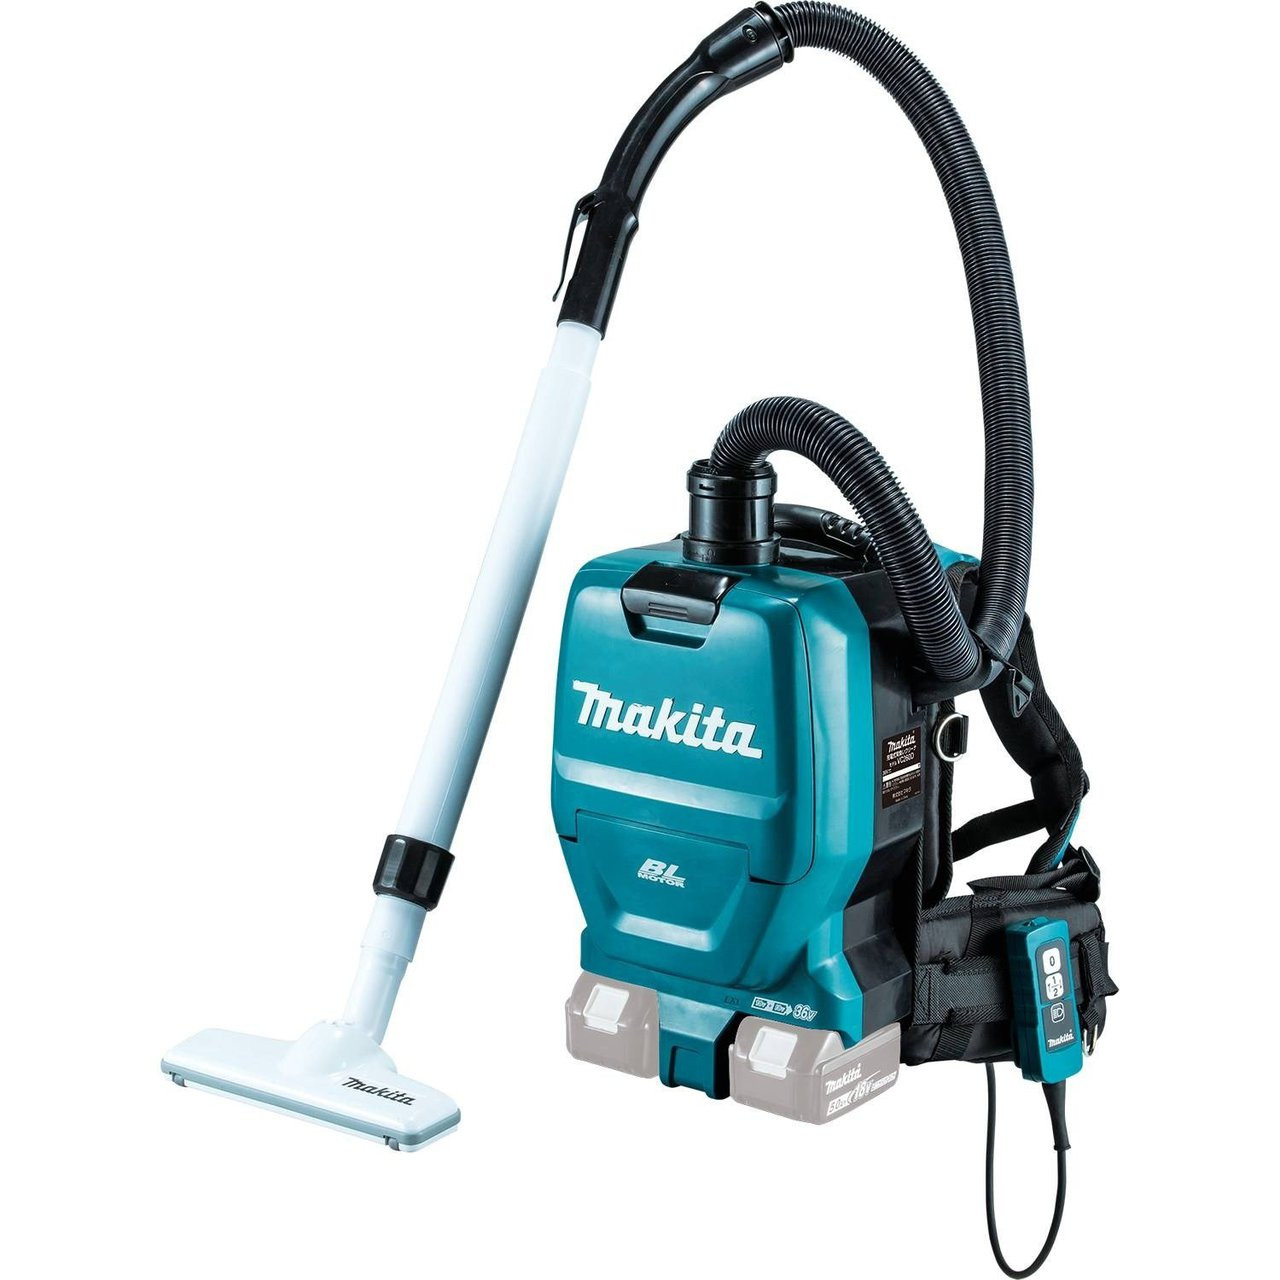 b90ea365d838 Makita XCV05Z 18V X2 LXT Lithium-Ion Brushless Cordless HEPA Filter  Backpack Vacuum Tool Only